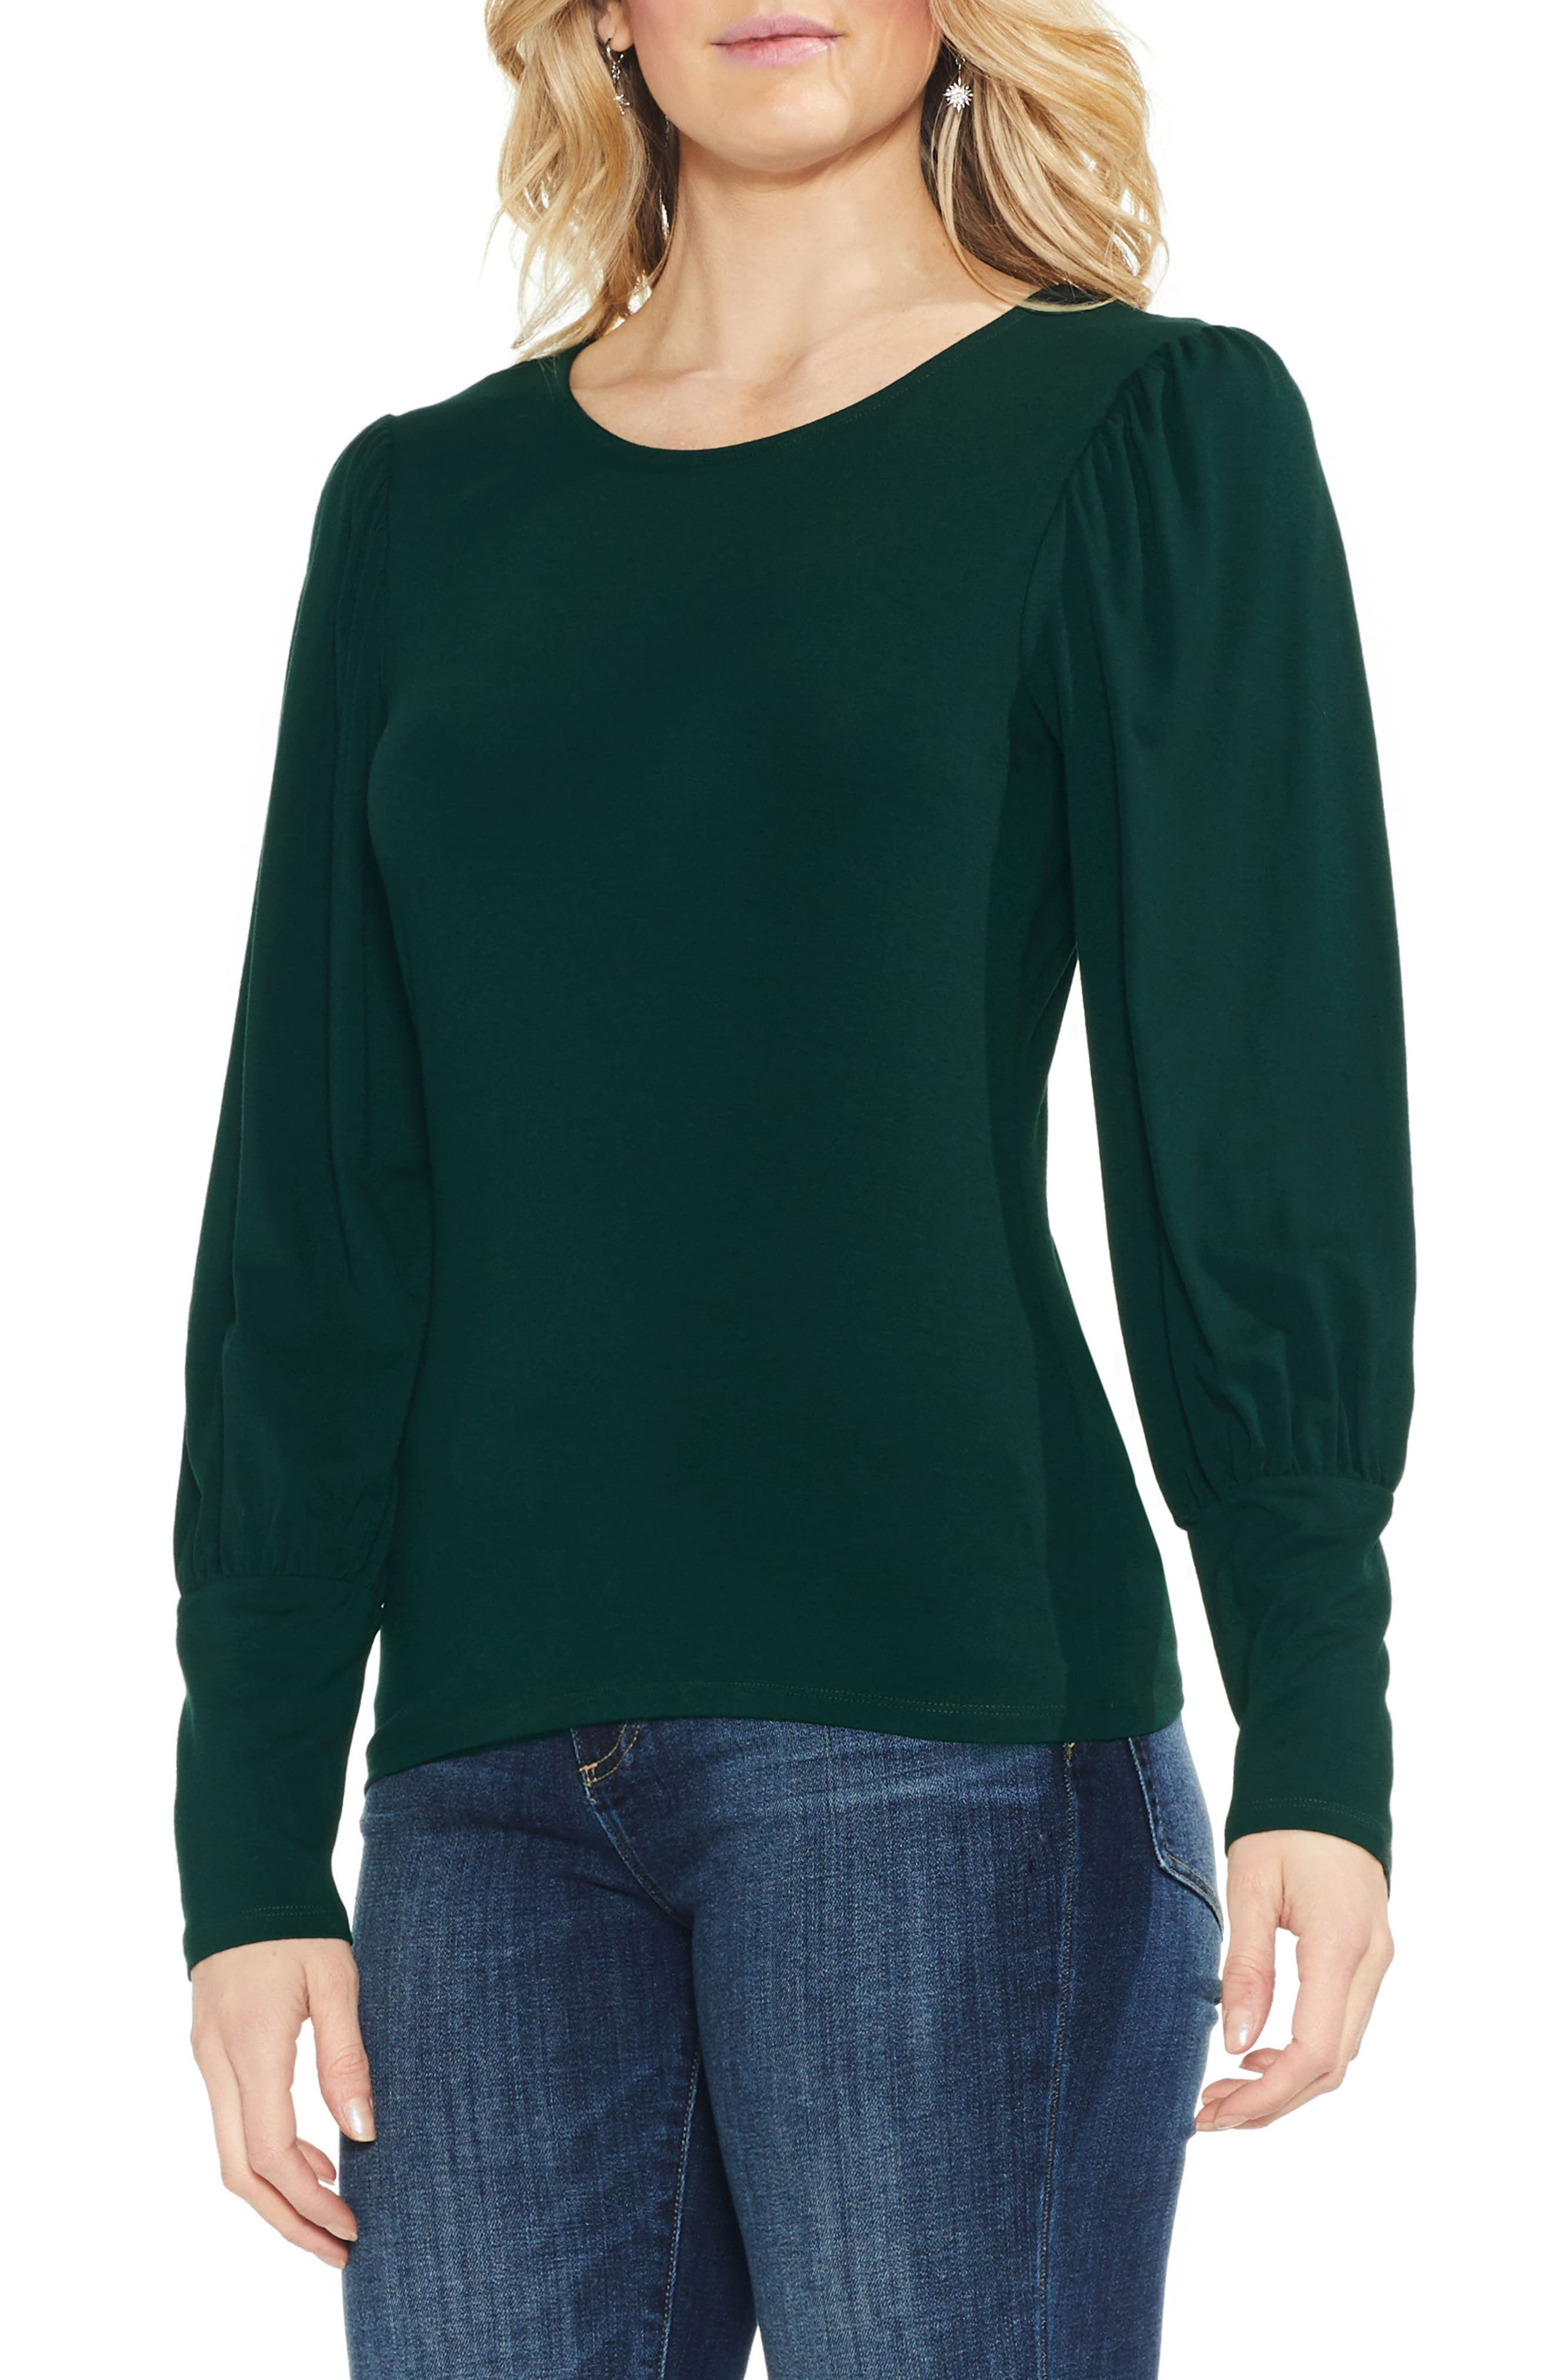 1930s Style Blouses, Shirts, Tops | Vintage Blouses Womens Vince Camuto Long Puff Sleeve Top Size XX-Small - Green $69.00 AT vintagedancer.com